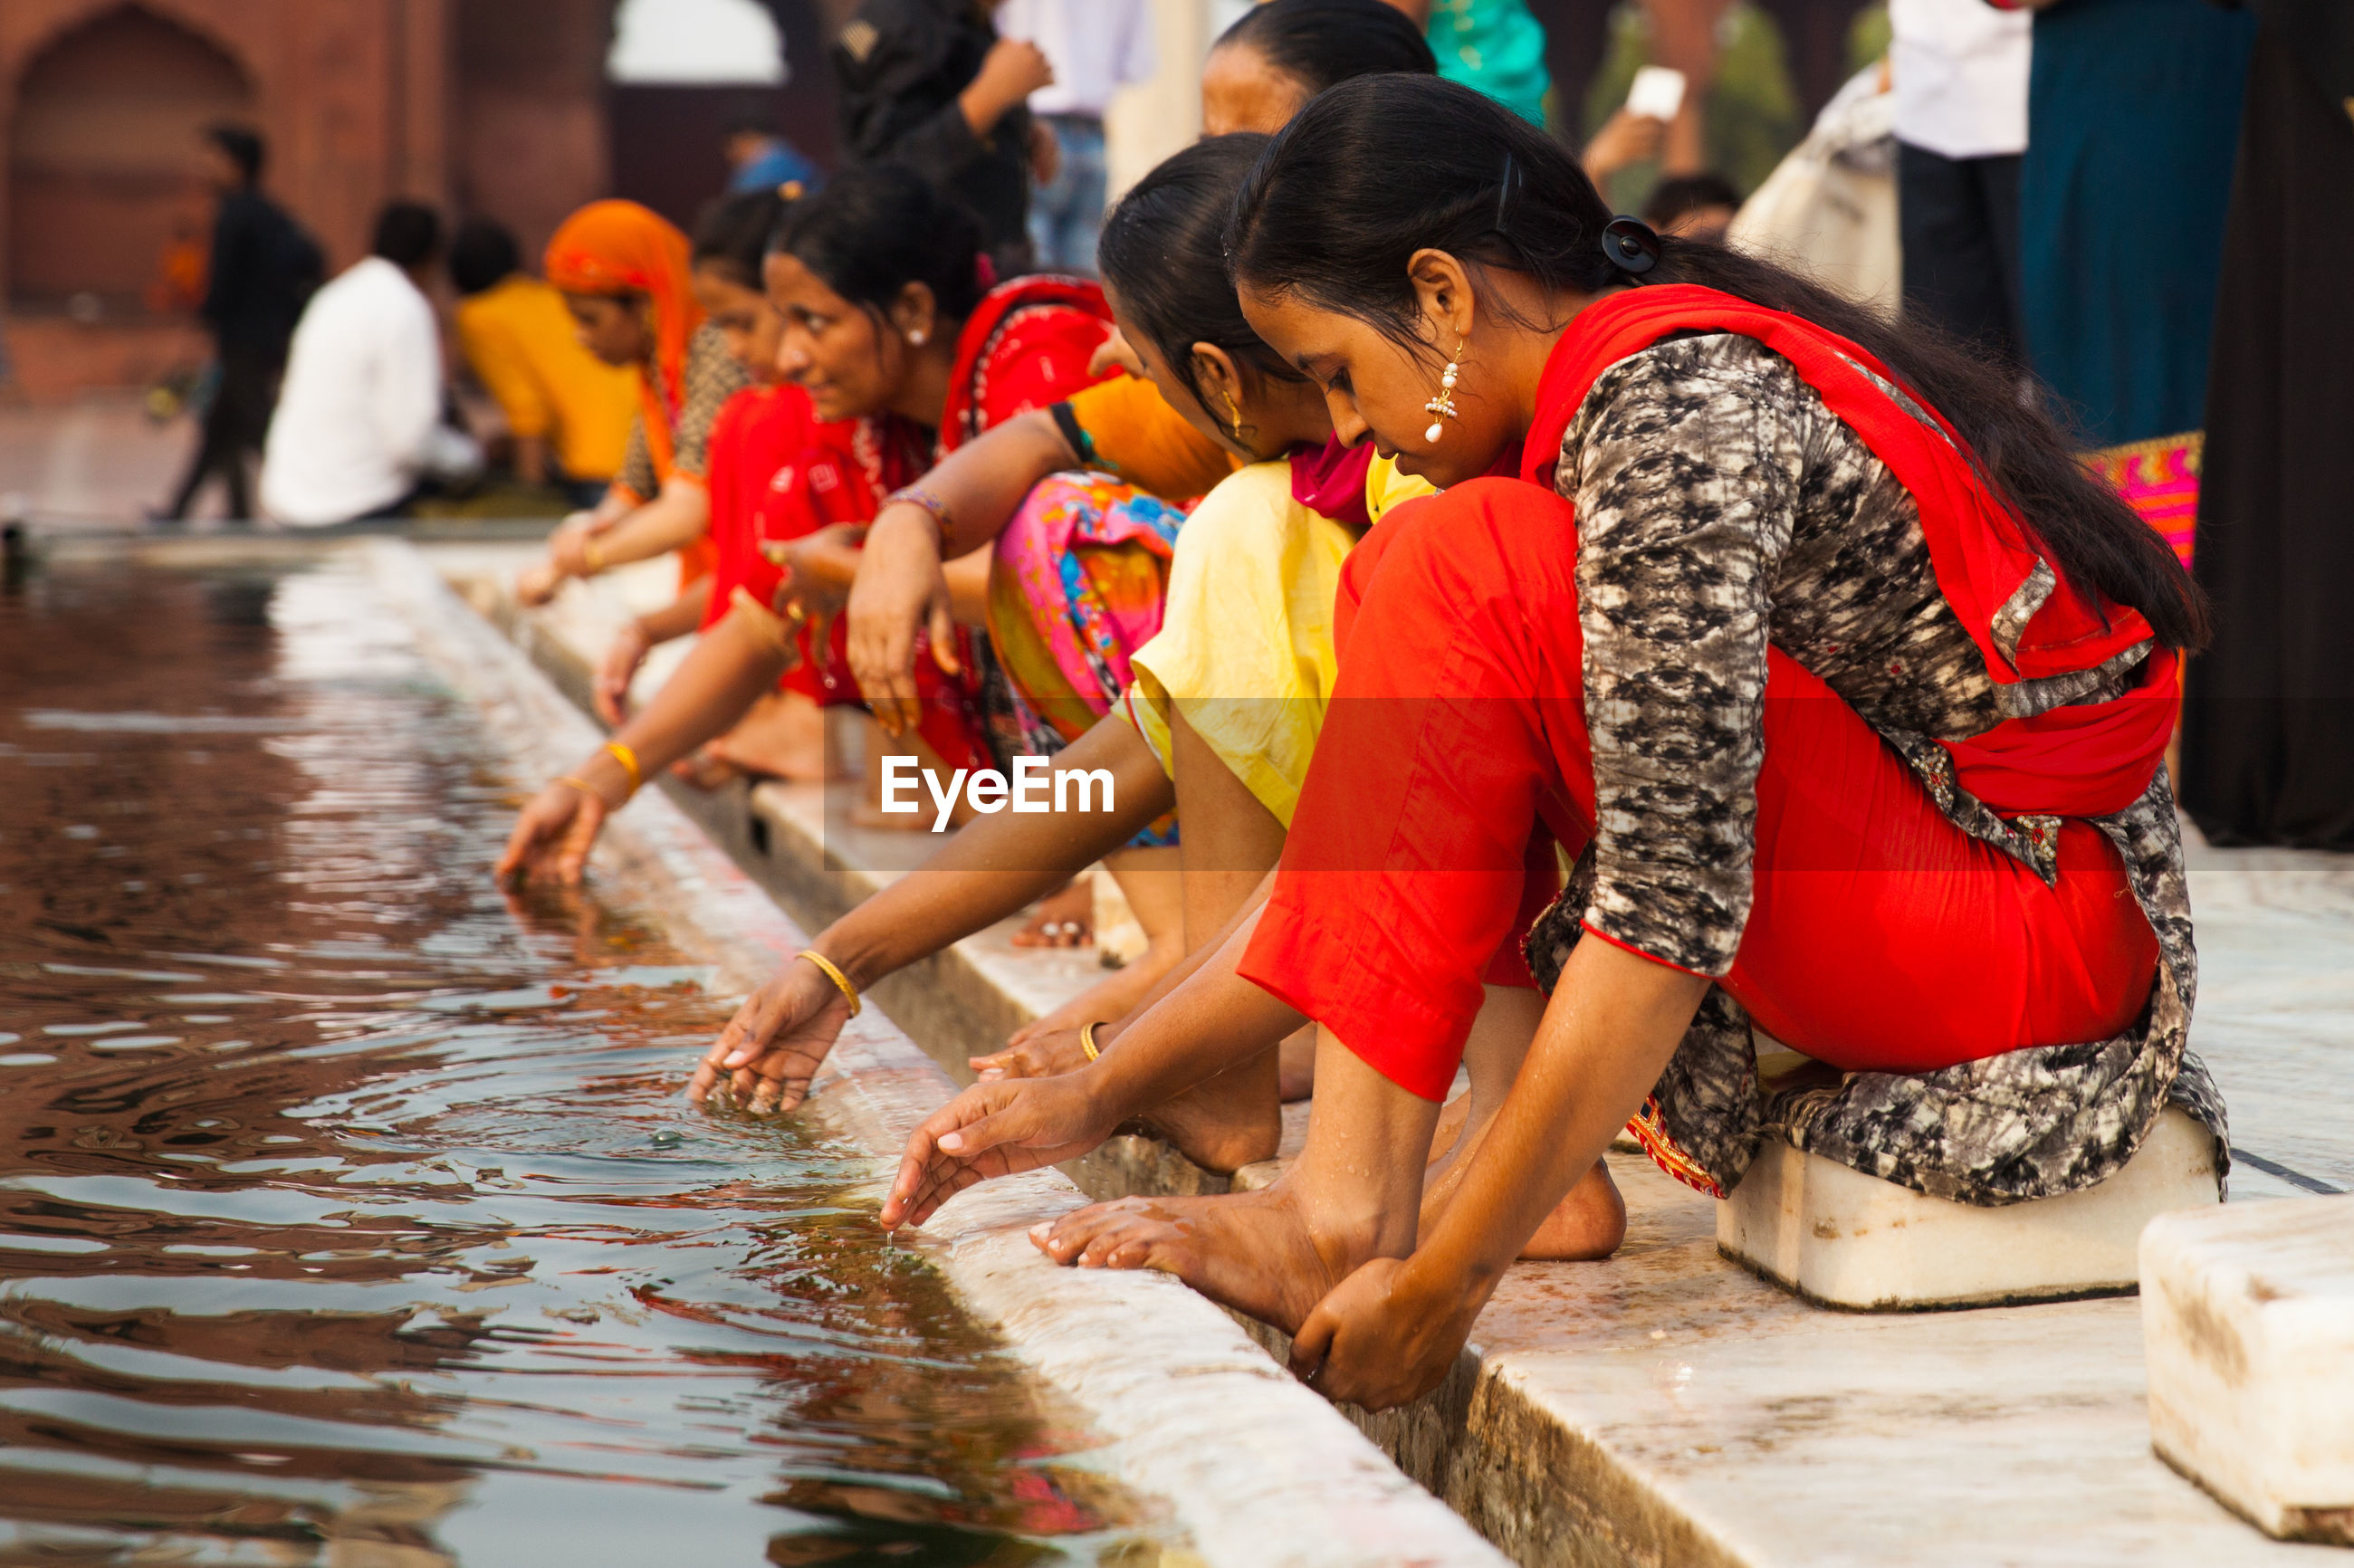 REAR VIEW OF PEOPLE SITTING IN WATER AT MARKET